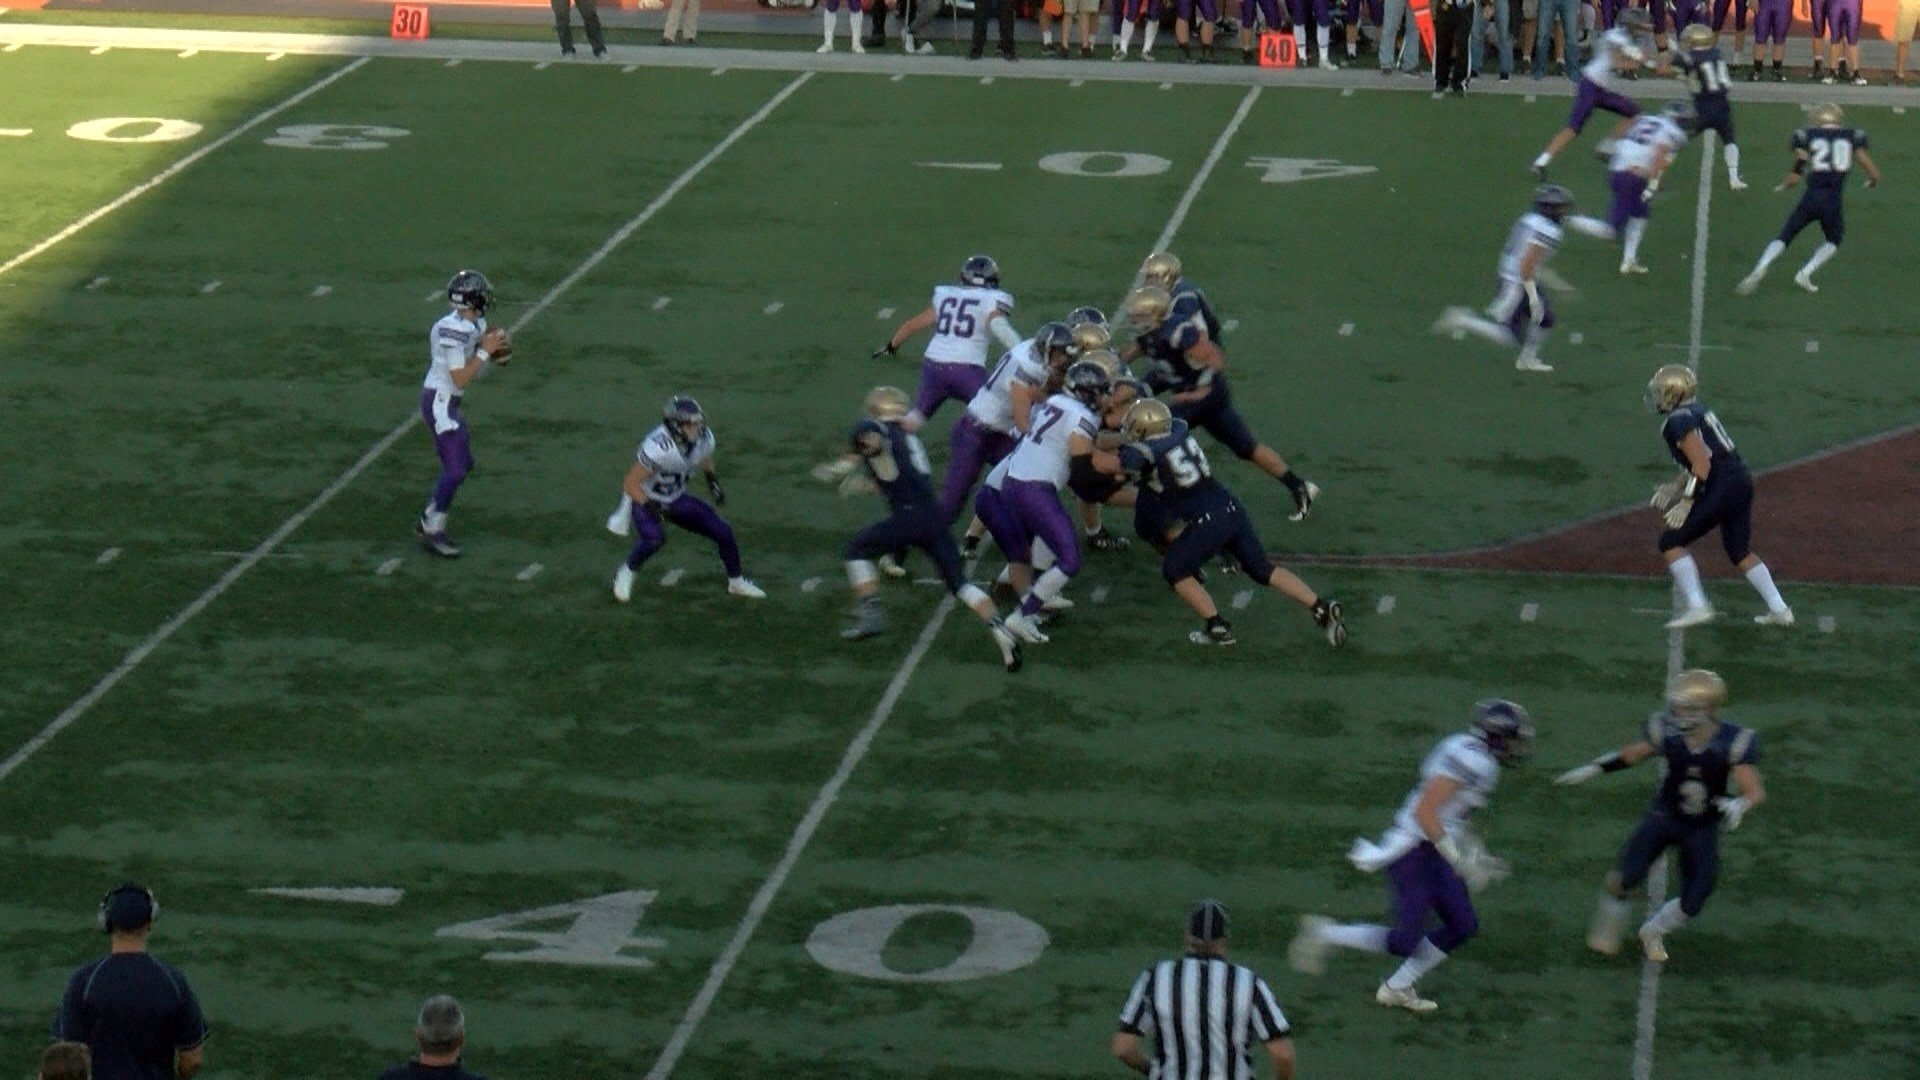 Aquinas playing MVC rival Onalaska in 2017. Aquinas would leave the MVC in football in 2019 following a vote by the WIAA on April 24, 2018.